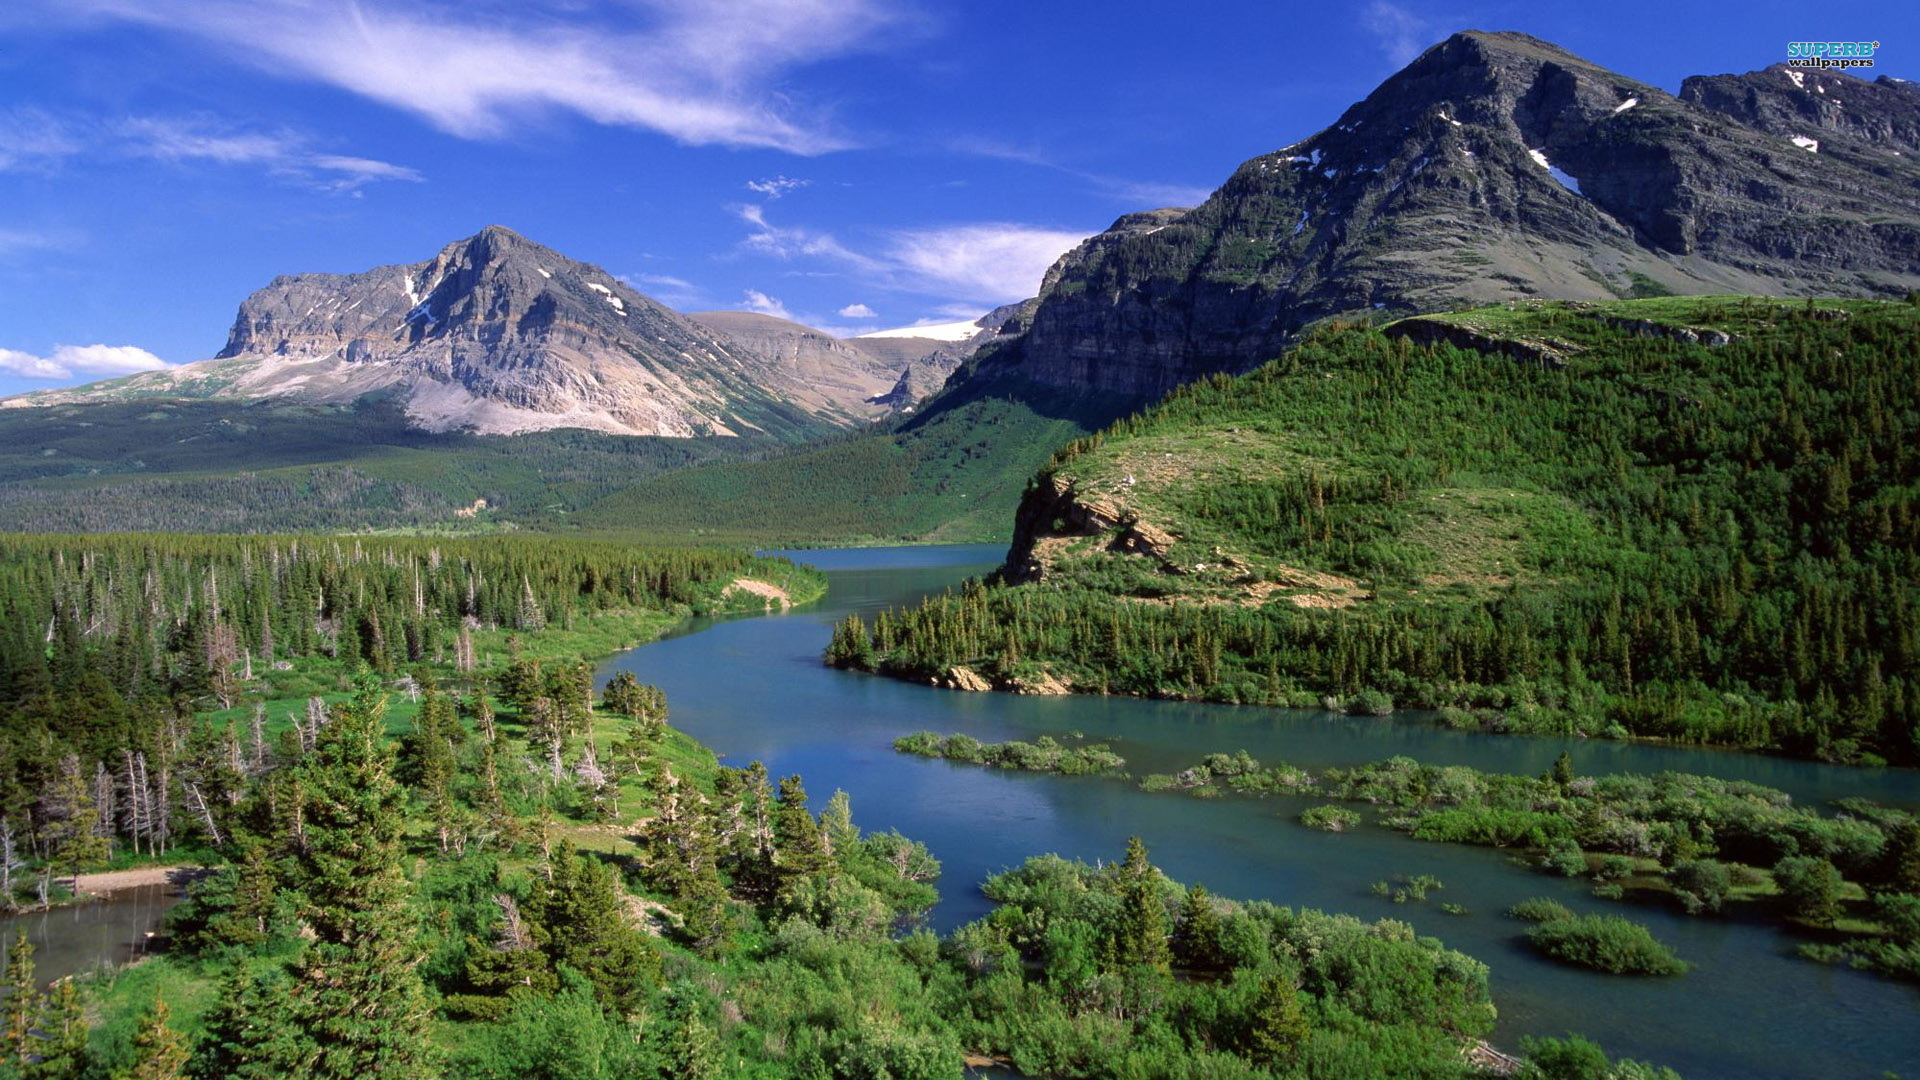 Hd glacier national park wallpapers full hd pictures - Glacier national park wallpaper ...